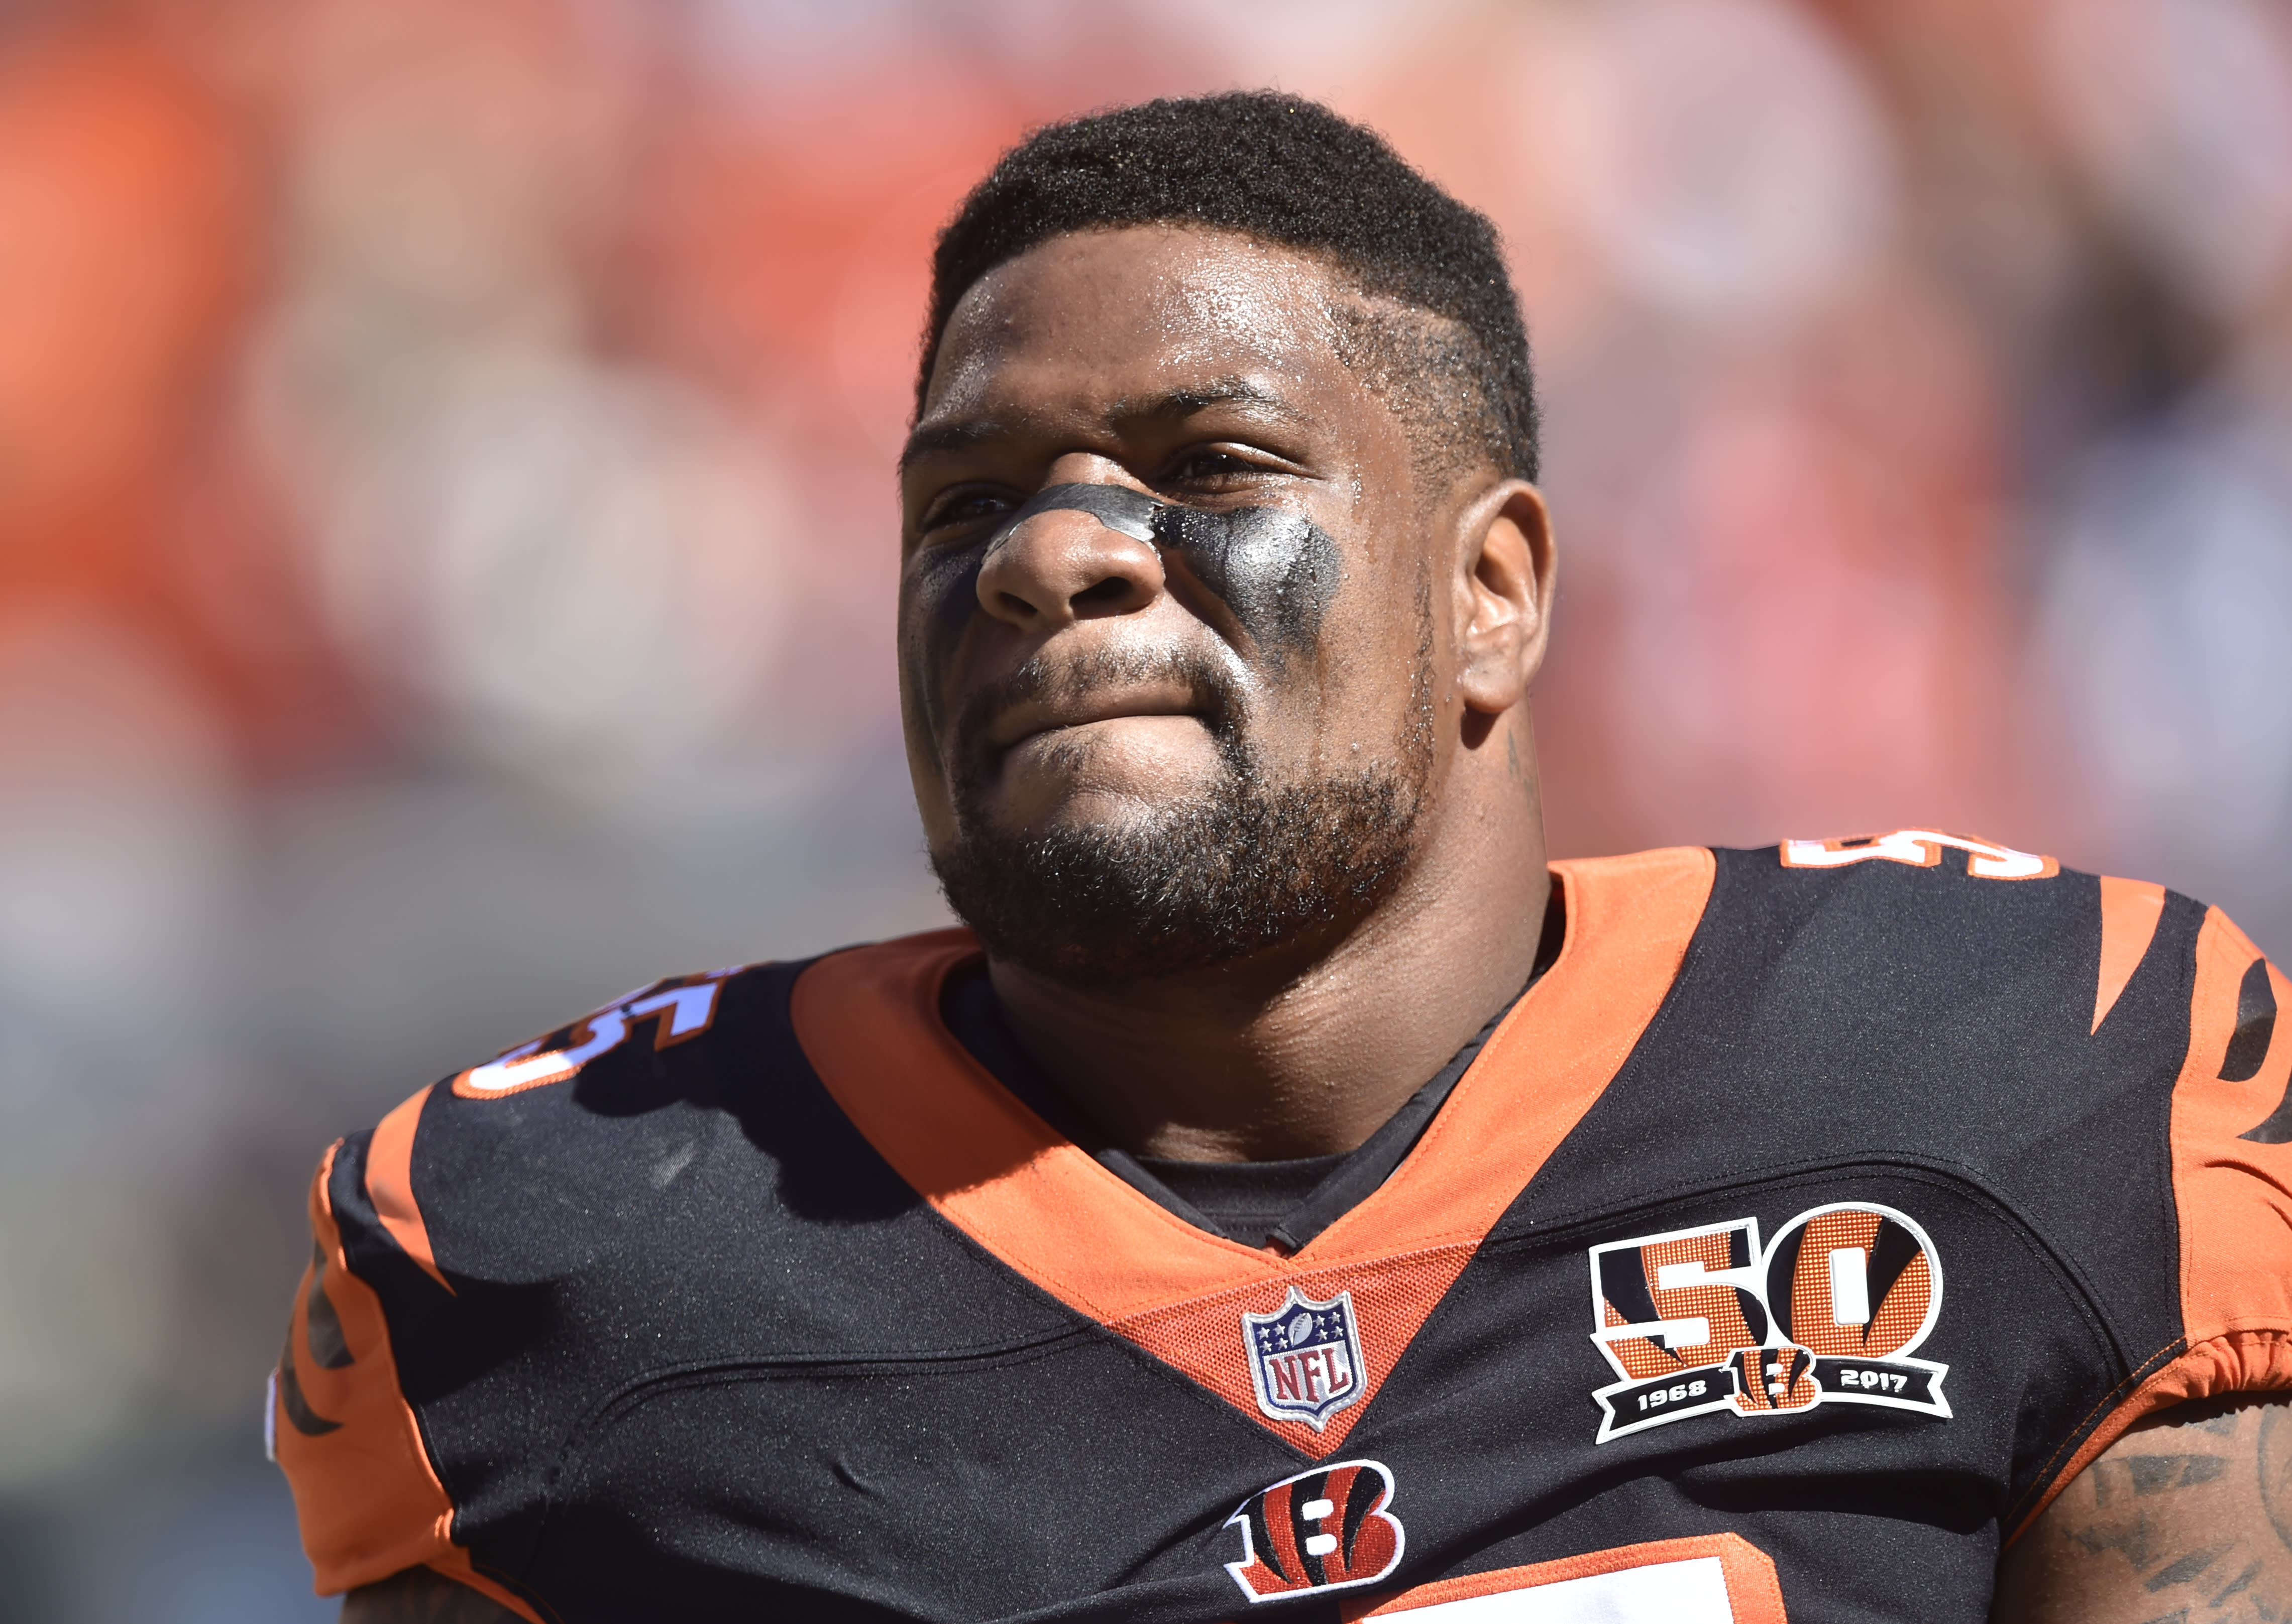 Steelers call for Vontaze Burfict to be suspended as NFL reviews his questionable hits